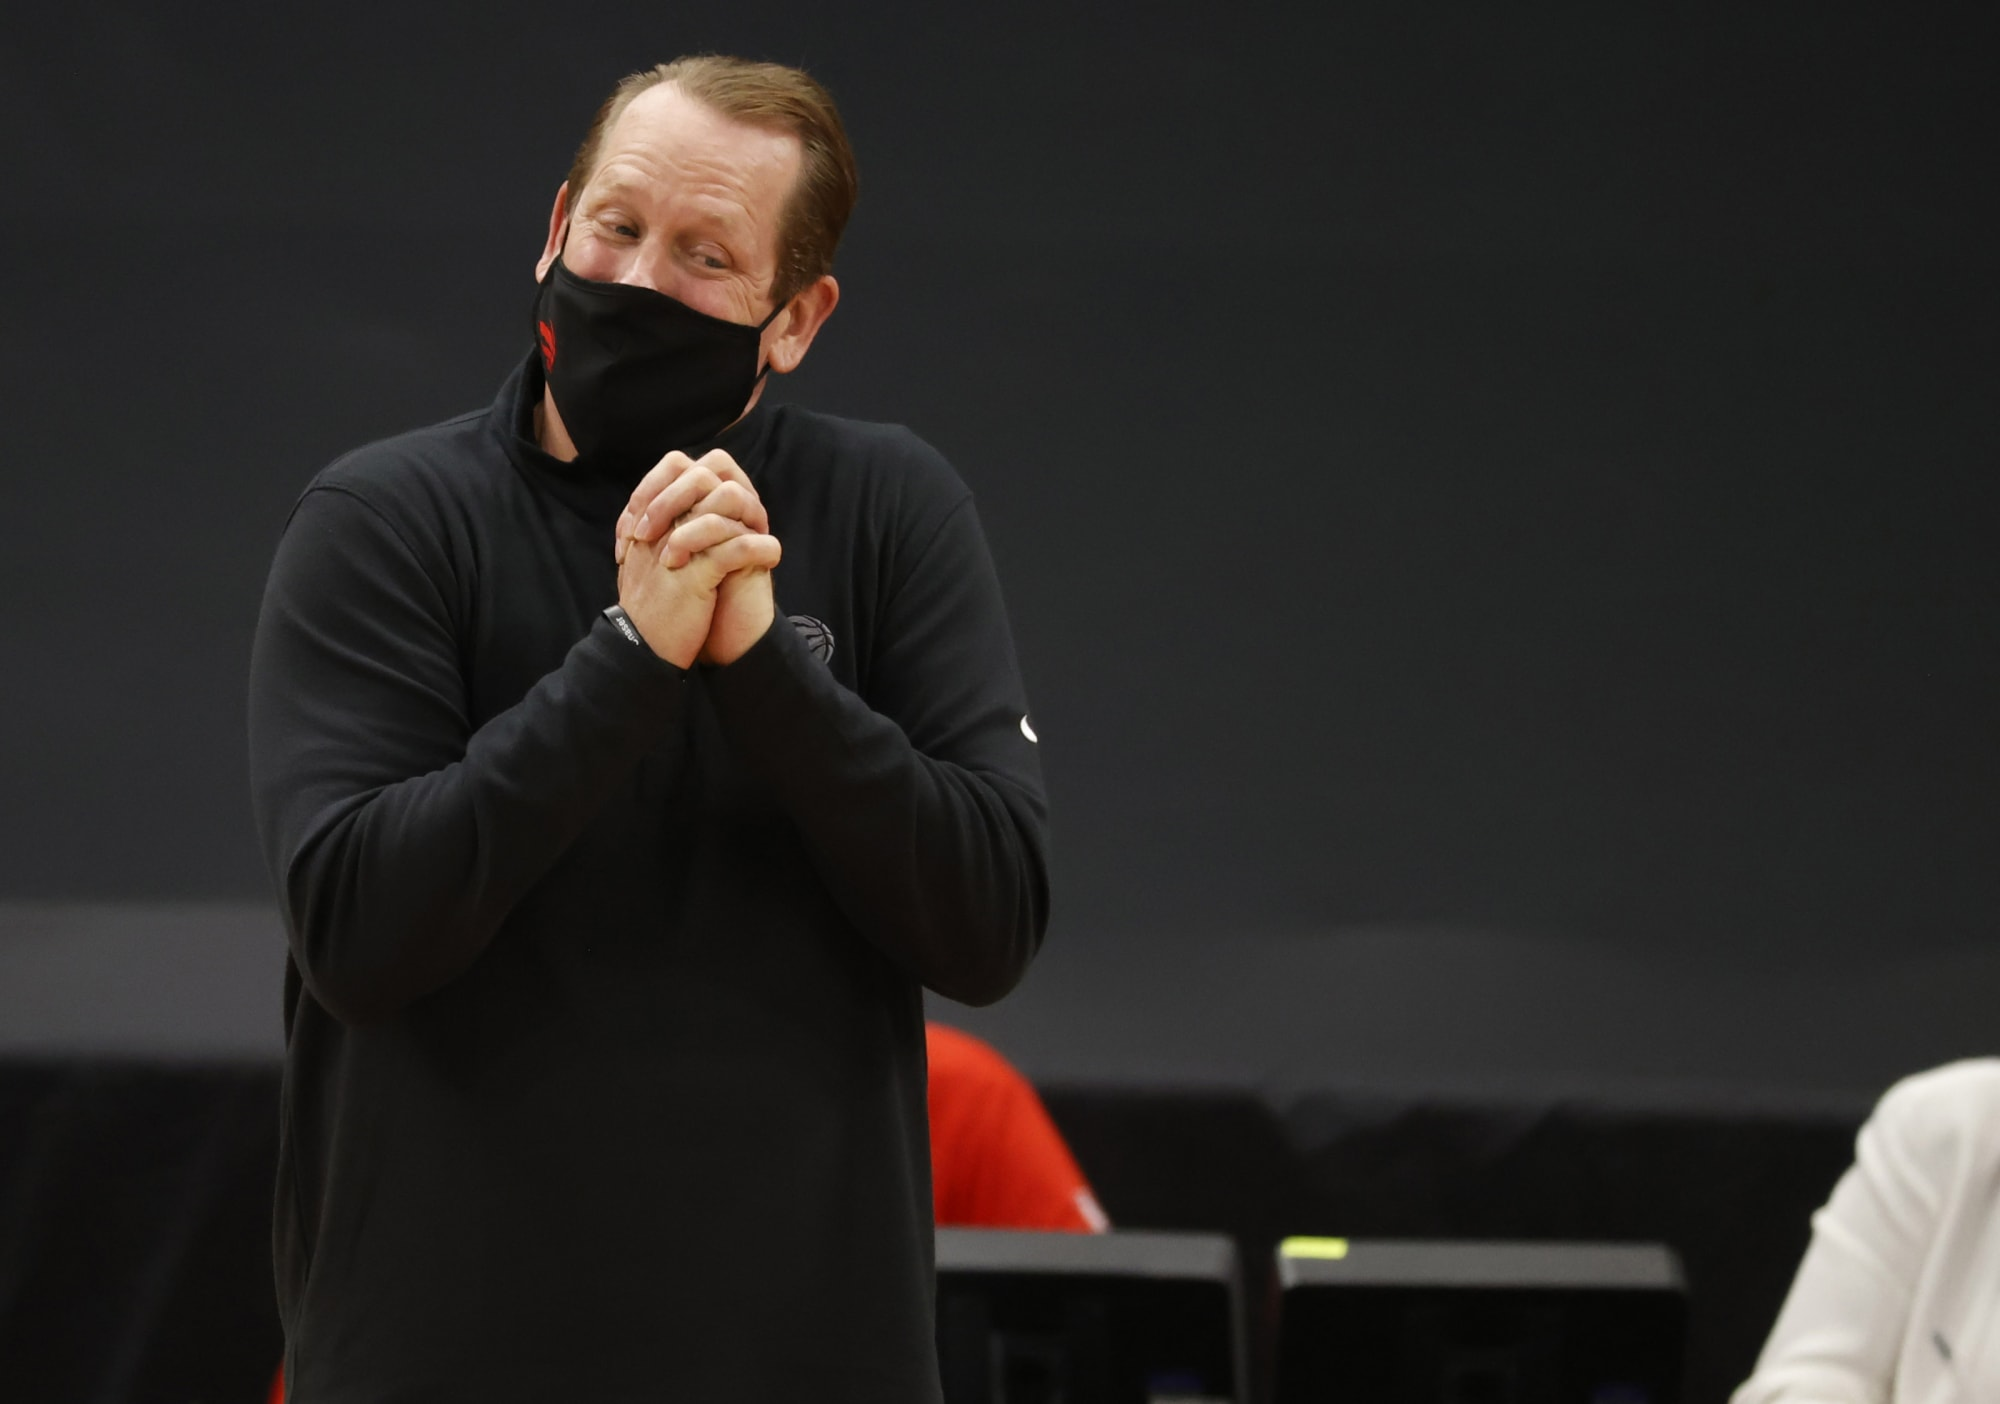 Toronto Raptors: Should Nick Nurse win Coach of the Year again?